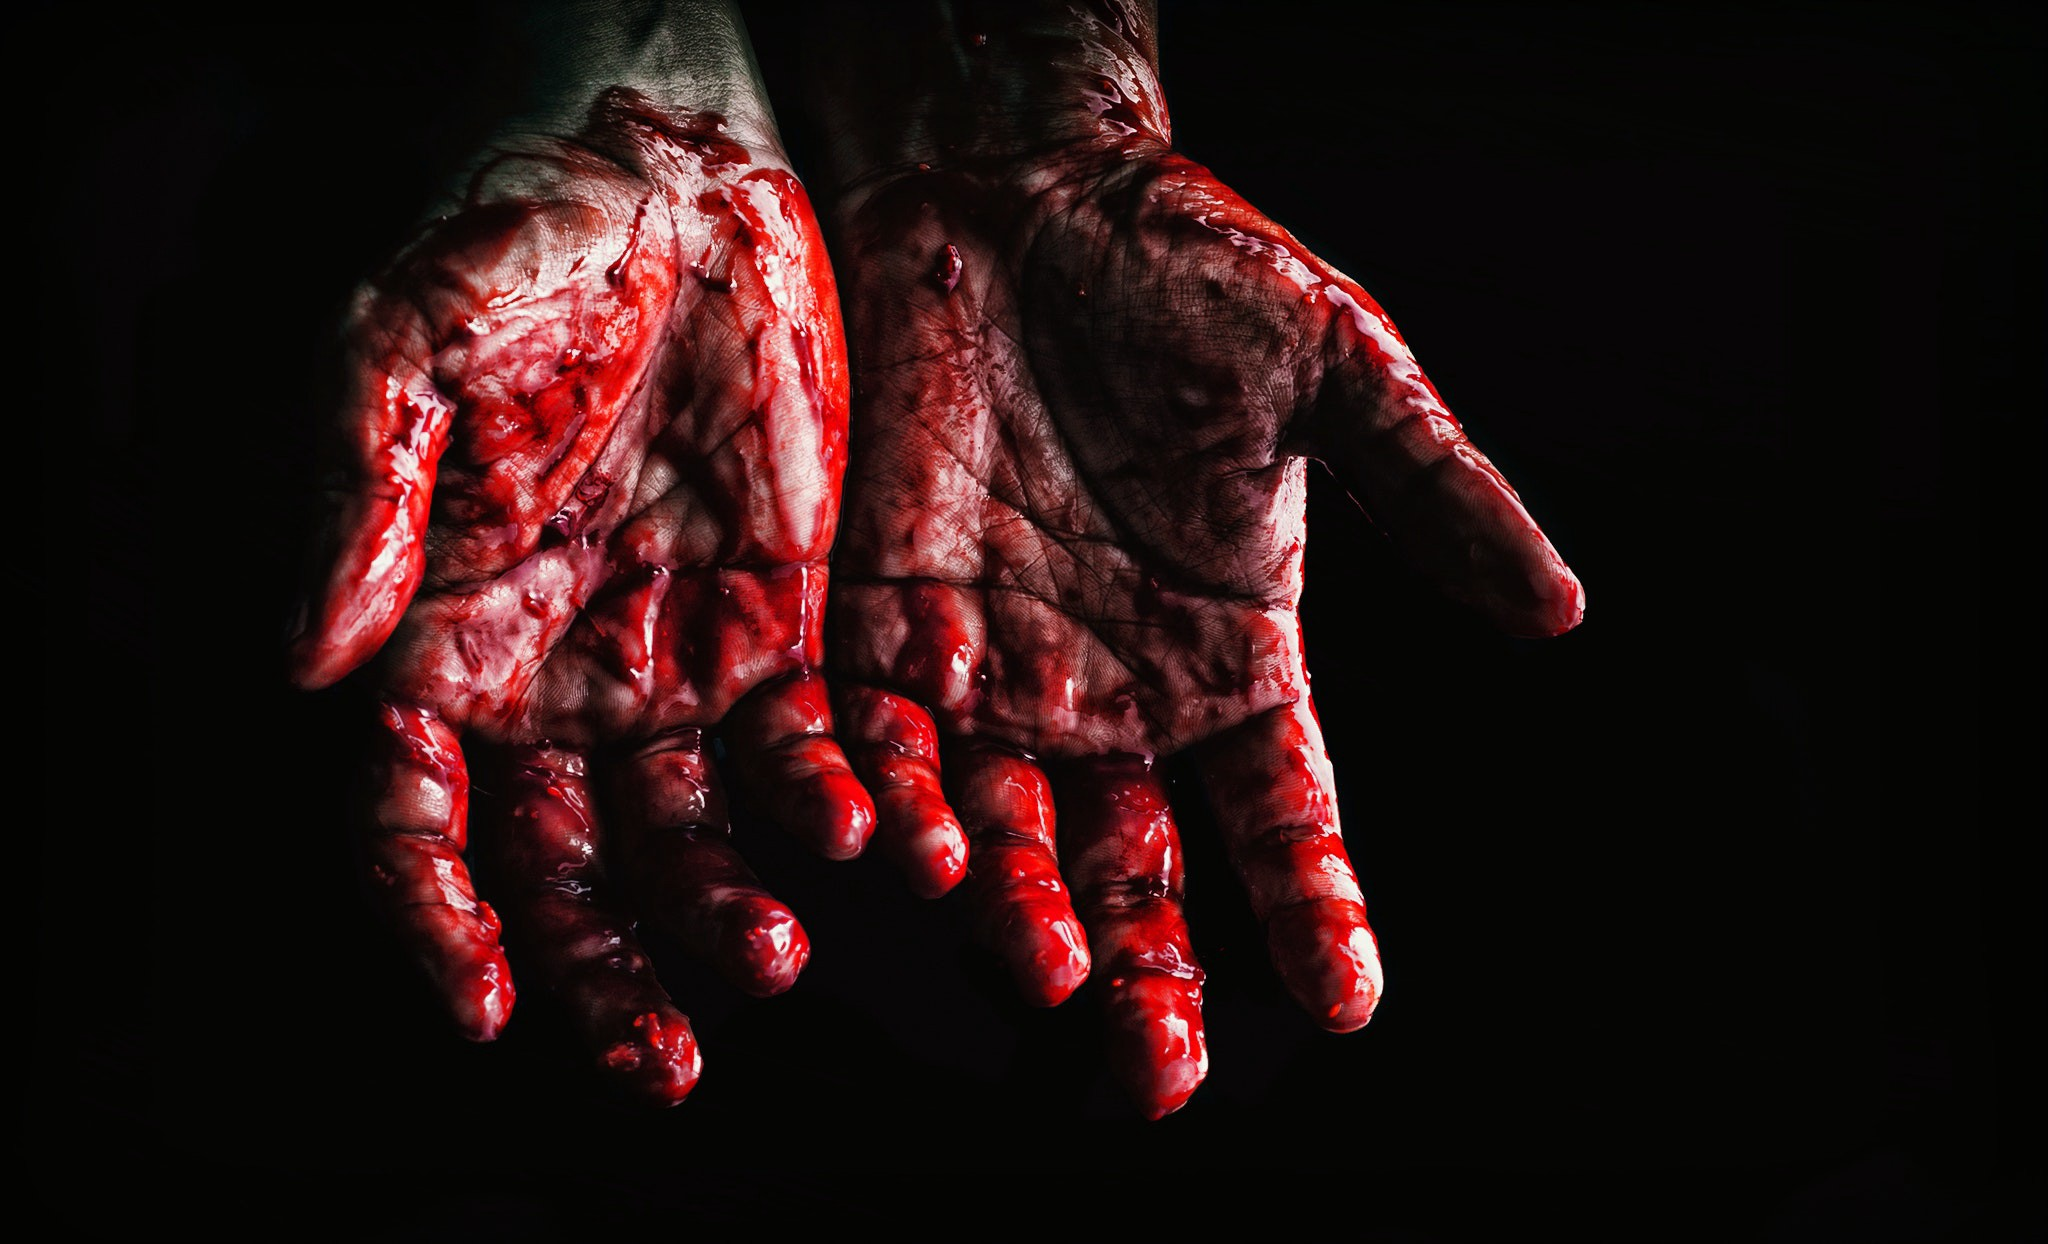 Person's Hands Covered With Blood